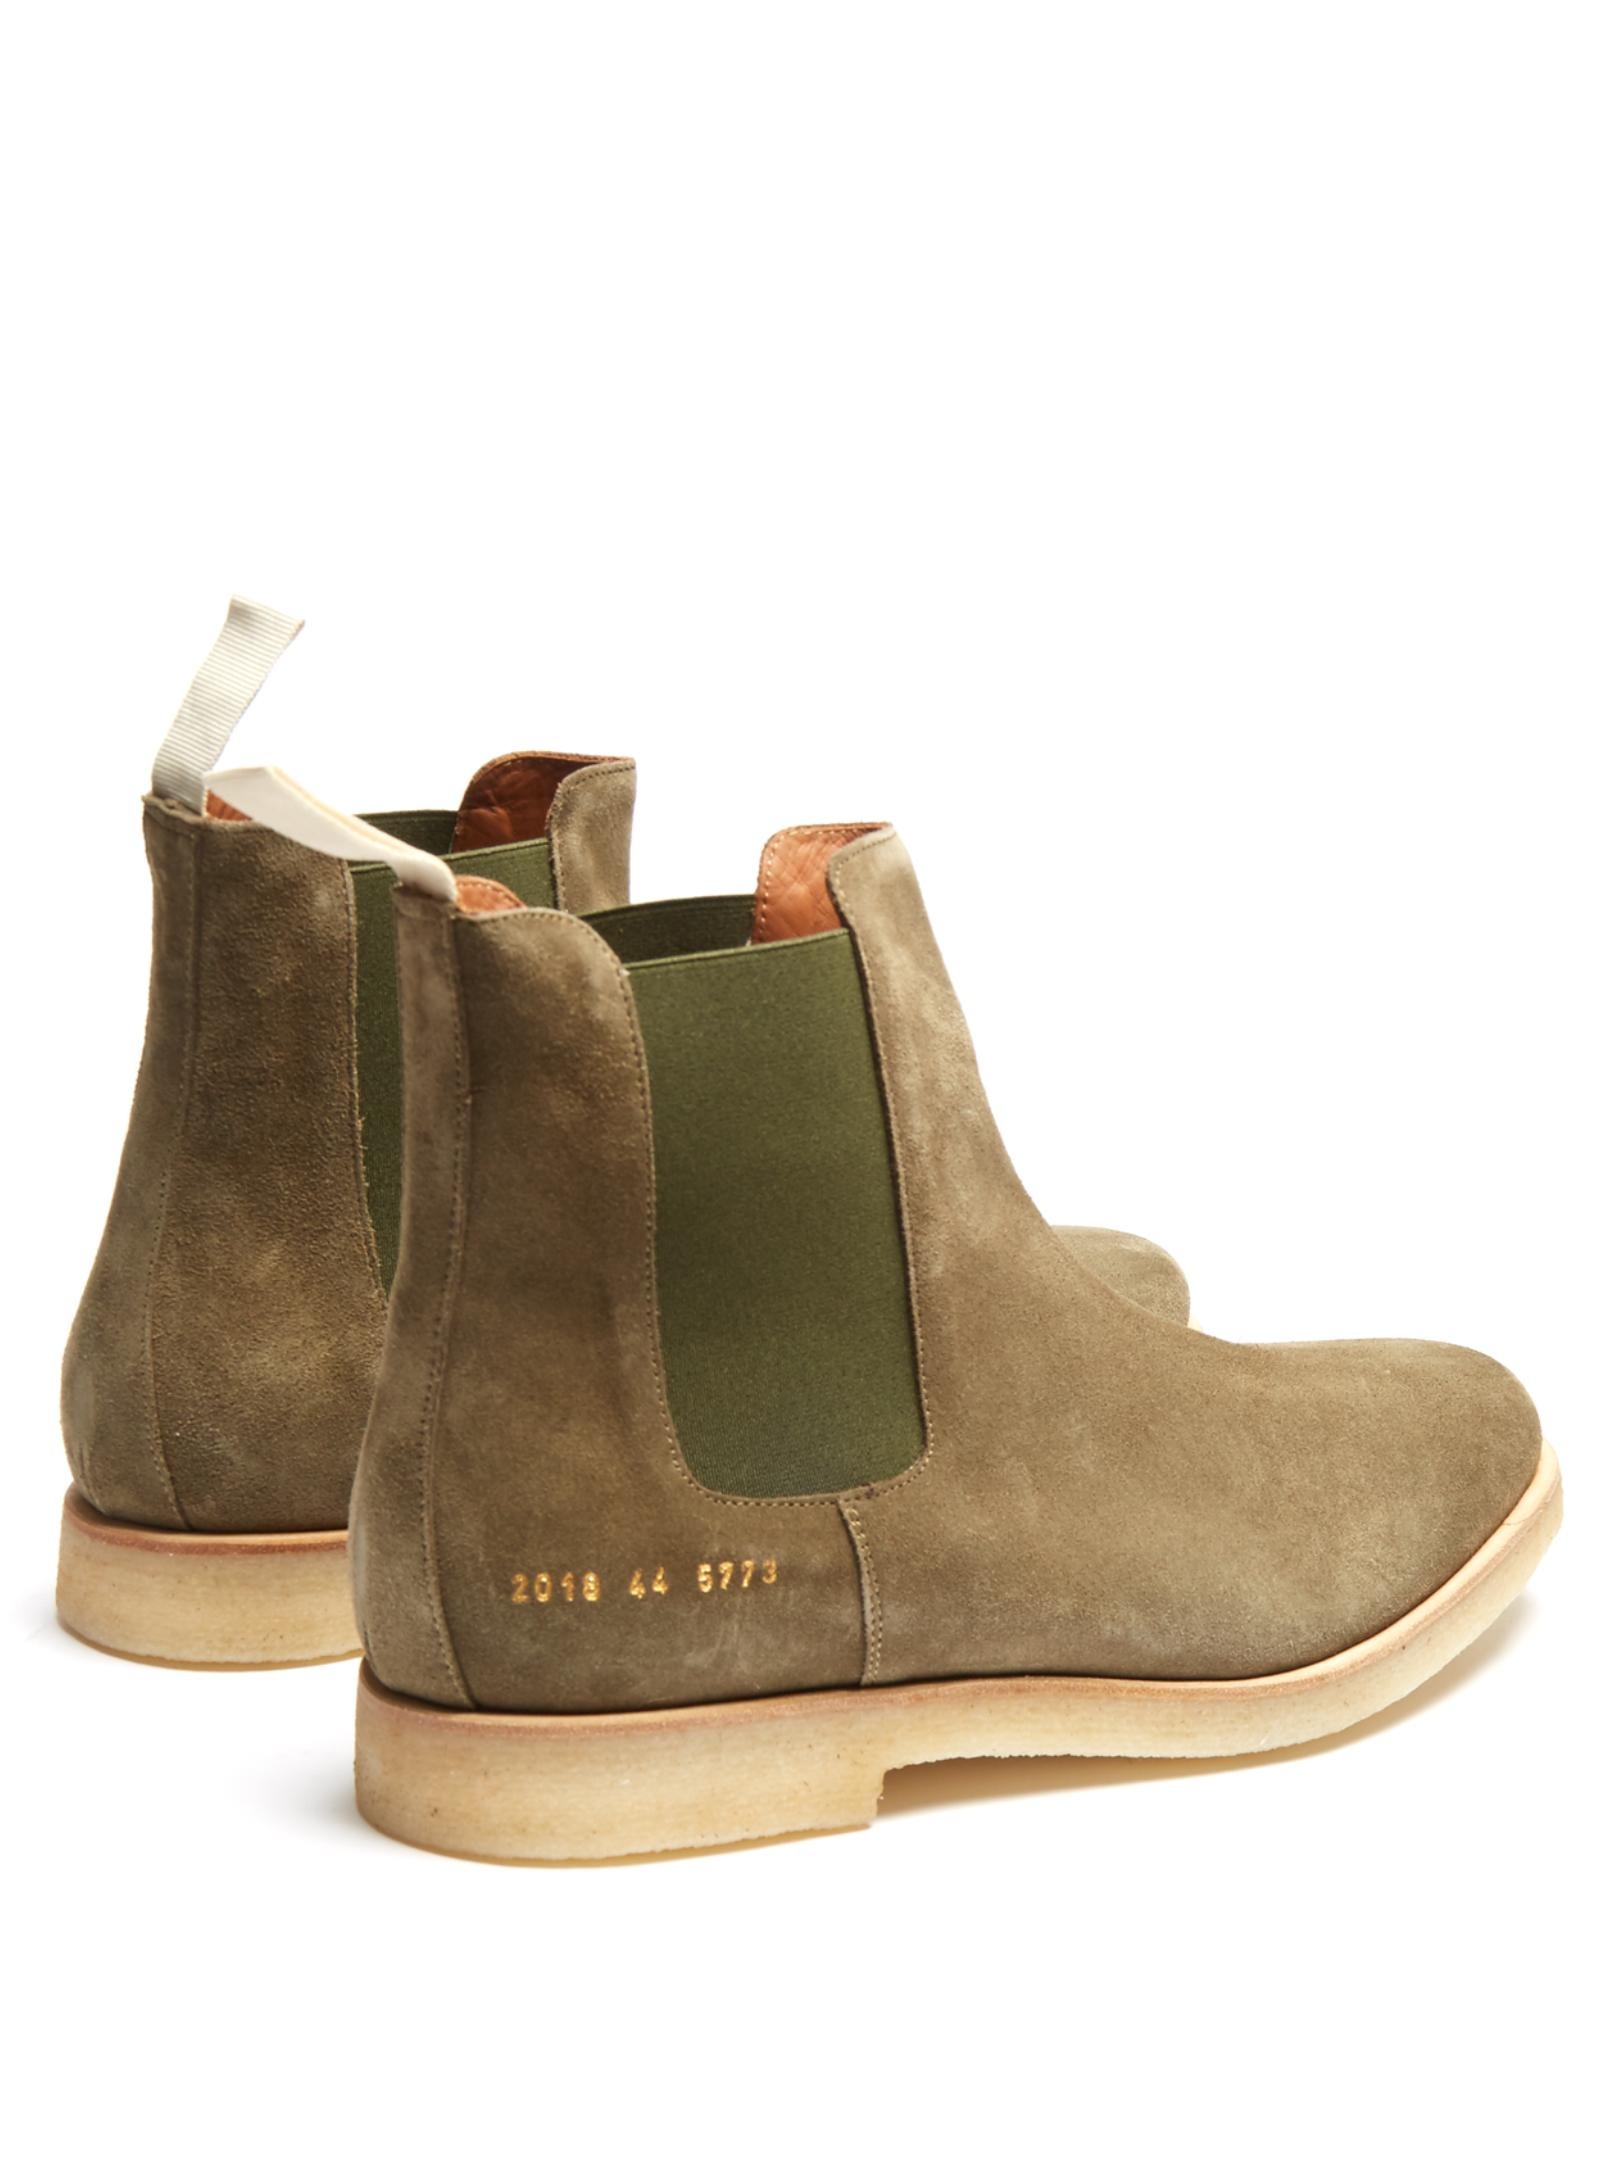 Common Projects Suede Chelsea Boots For Men Lyst